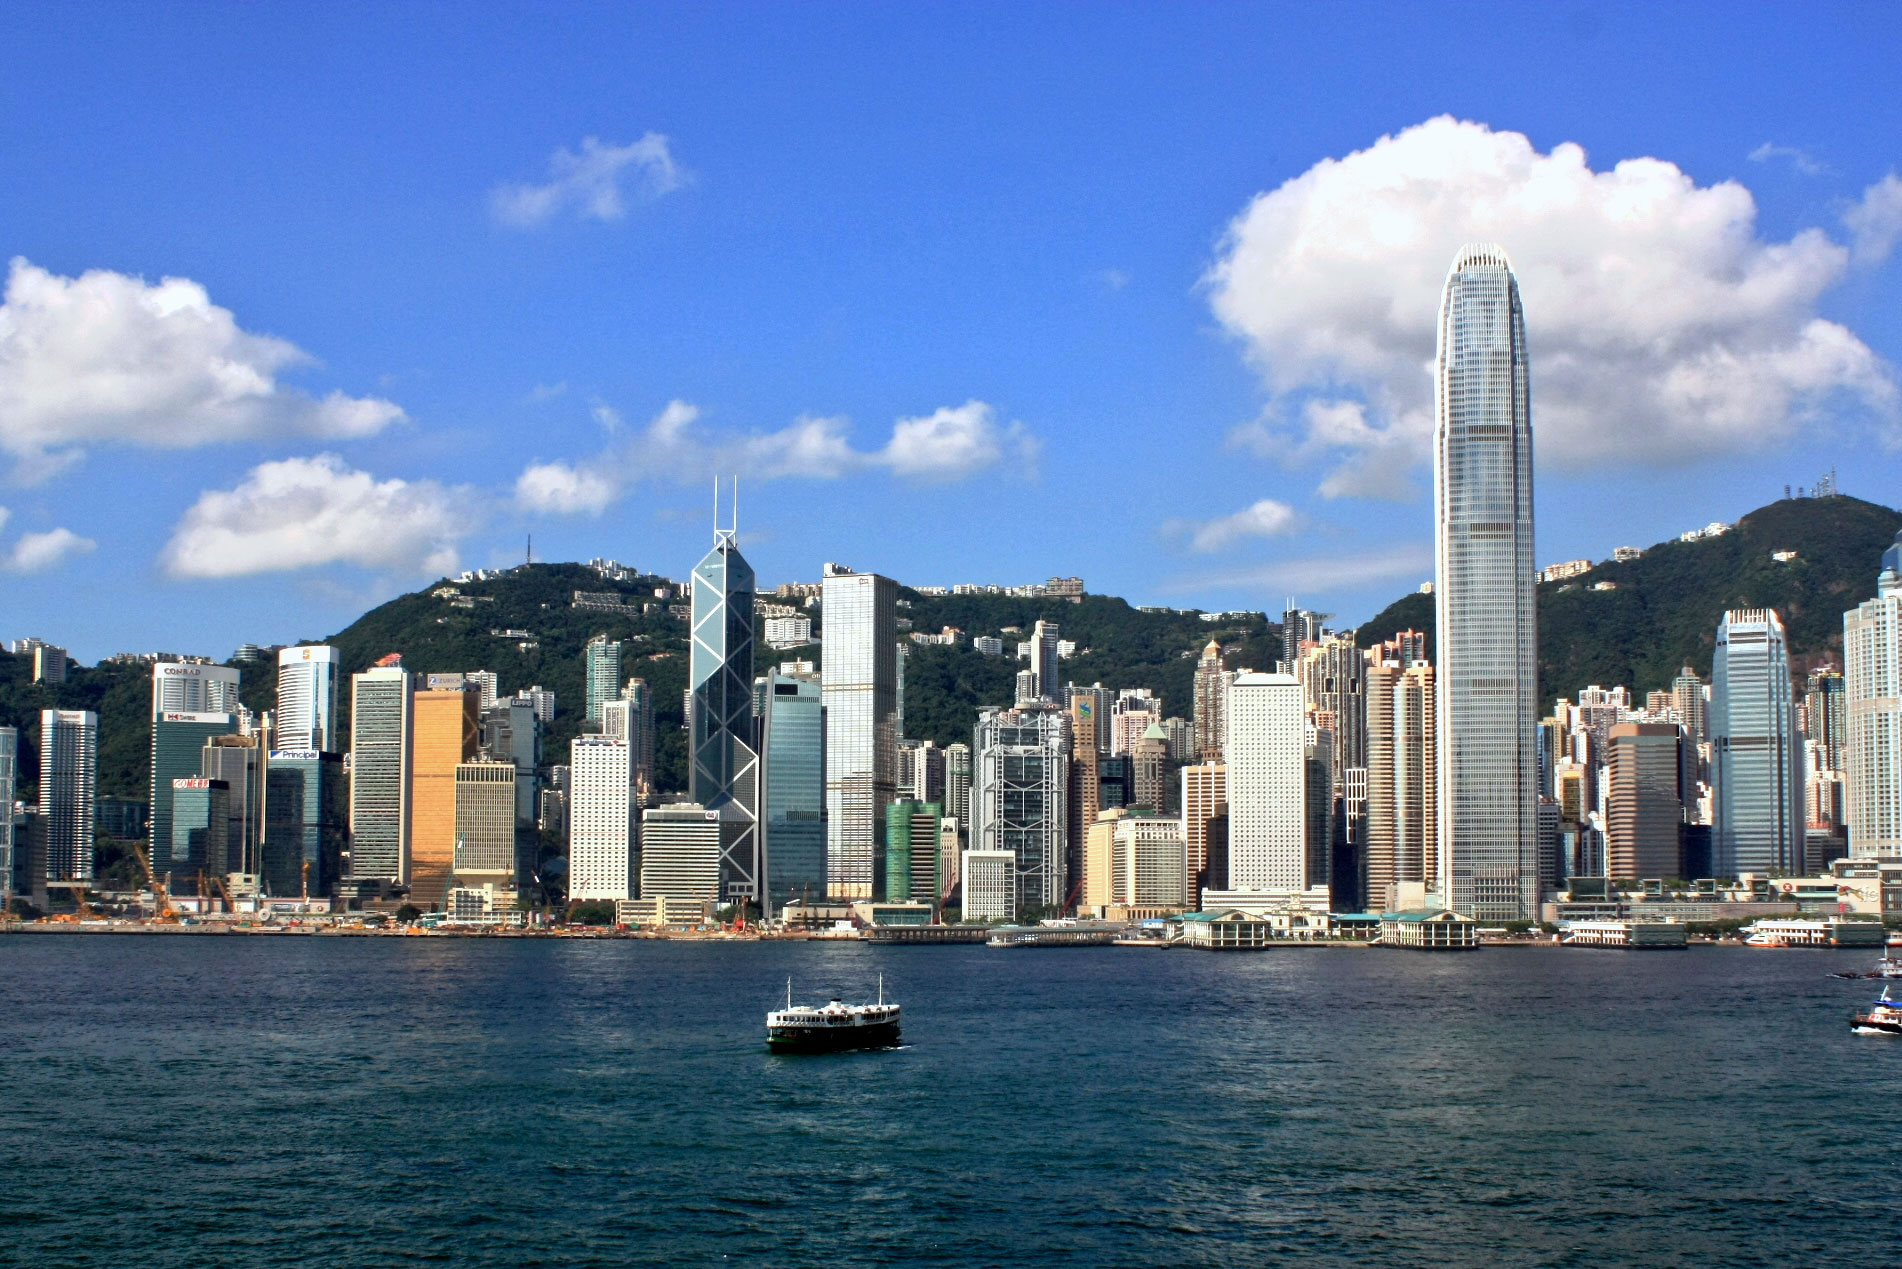 Hong Kong's highest court rules in favor of spousal visas in the QT case